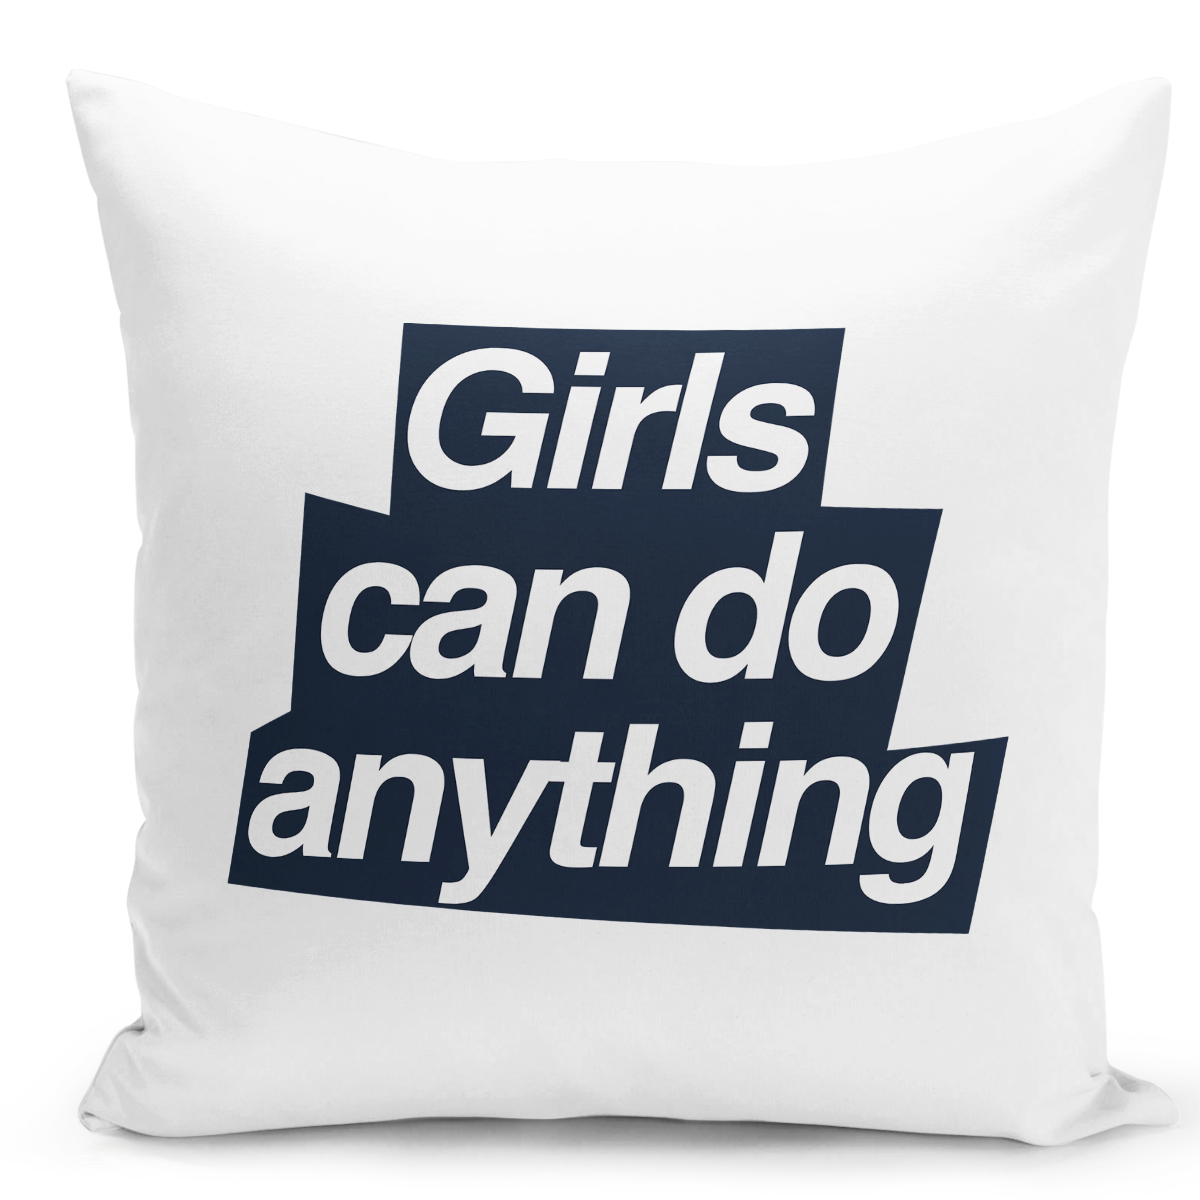 16x16-inch-Throw-Pillow-for-Home-Decor-with-Stuffing-Girls-Can-Do-Anything-Women-Strength-Power-Pillow-